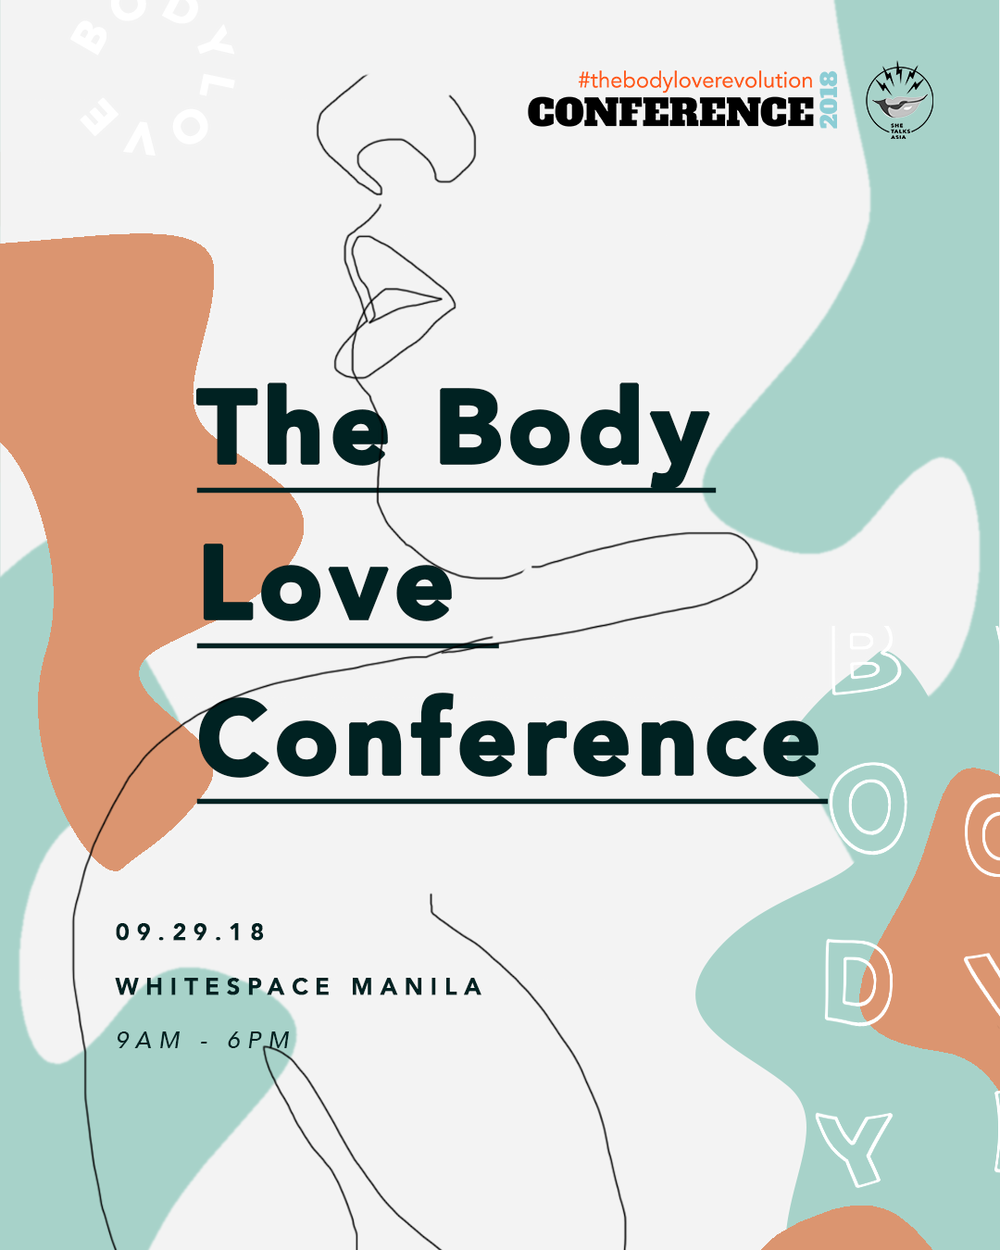 Join us on September 29, 2018 at Whitespace in Manila, Philippines, as we dedicate a day to involved and inspiring discussions about how to better respect, relate, and repair our bodies and body image.